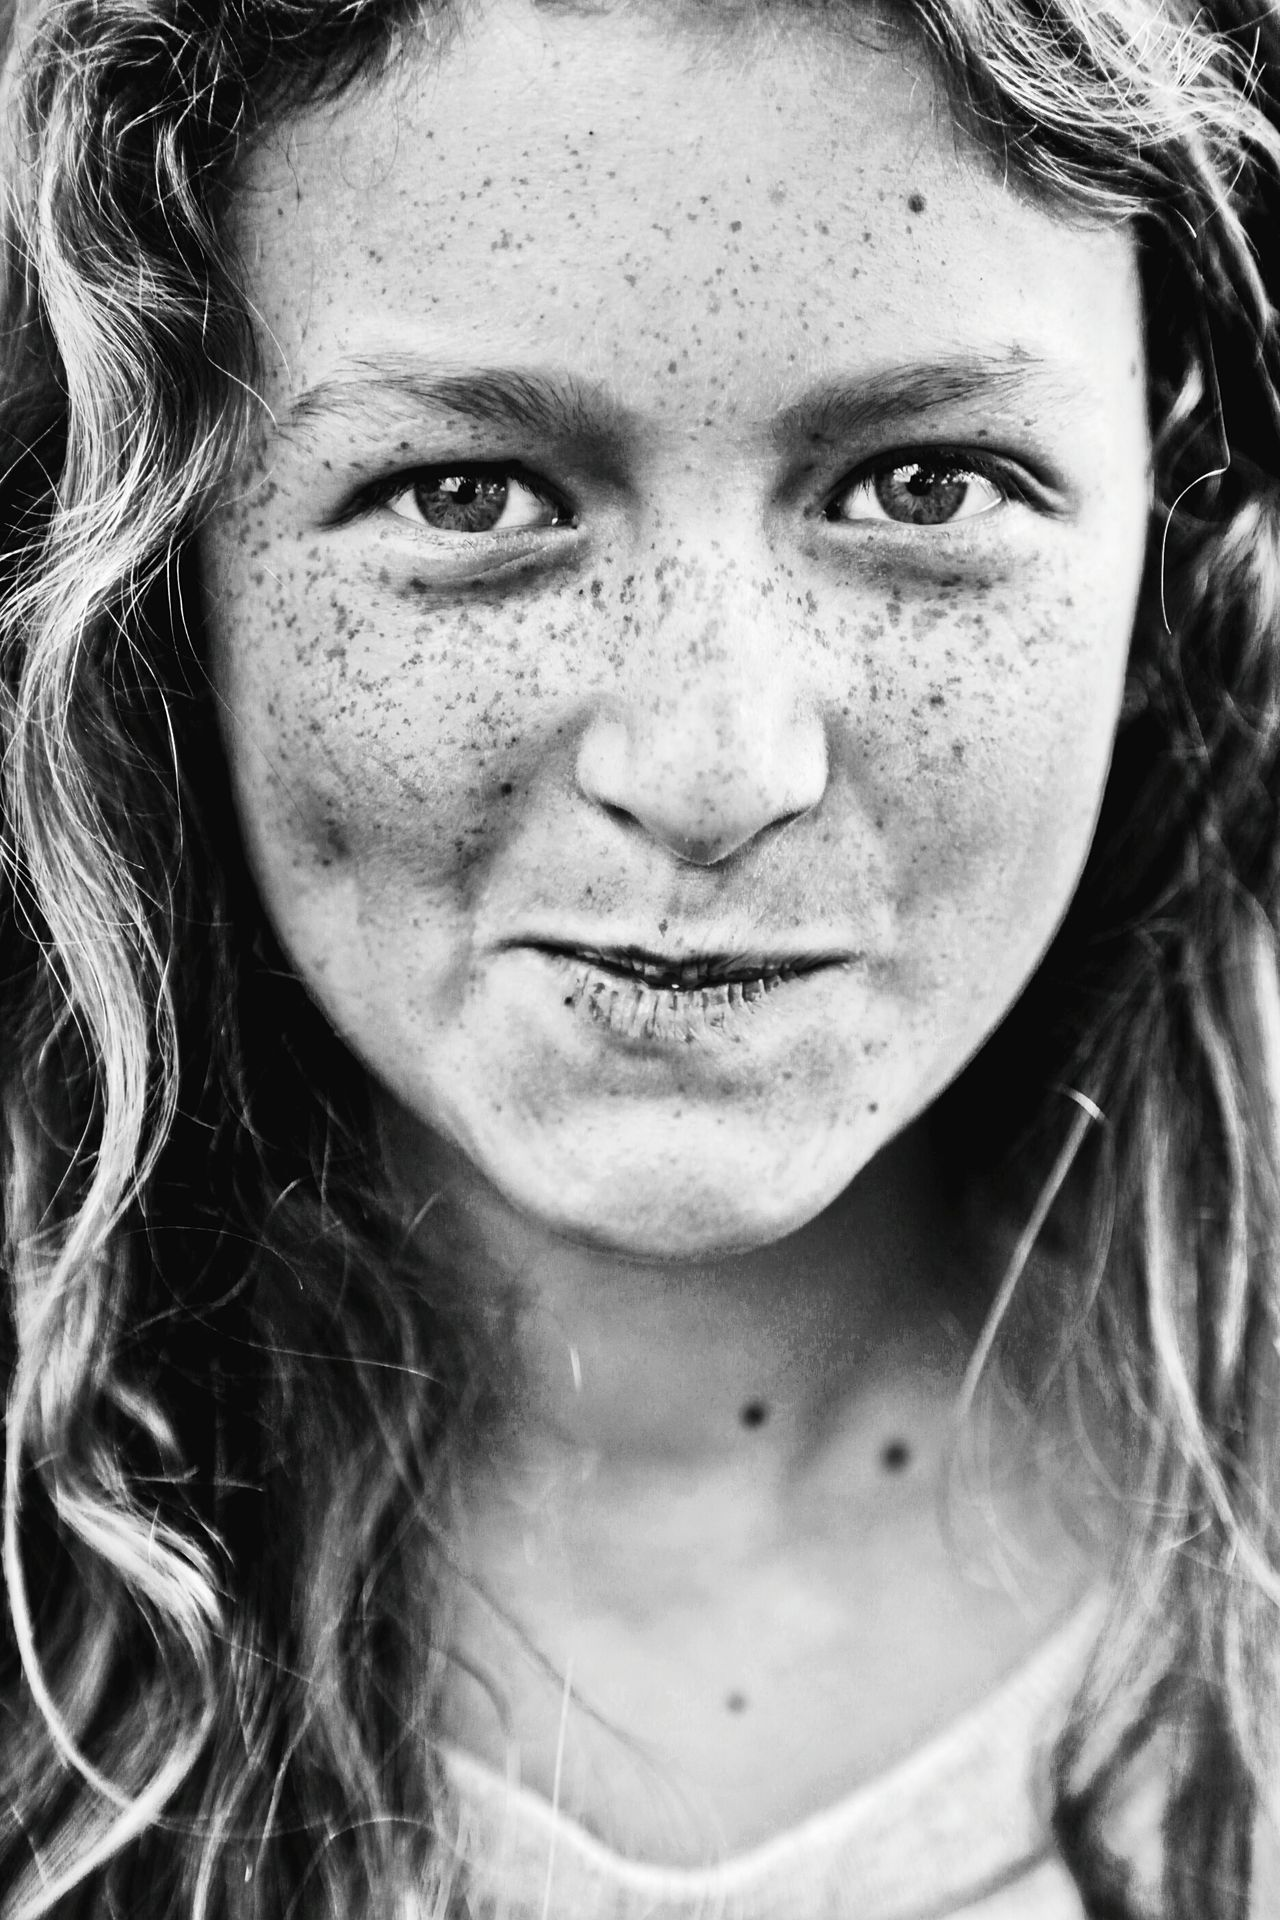 Portrait Close-up Child Girl Freckle Freckles Freckled Girl Freckle Face Headshot One Person One Girl Only Real People People Looking At Camera Black & White Black And White Blackandwhite Beauty Looking At Camera Human Face Expression EyeEmNewHere Resist Art Is Everywhere Fresh on Market 2017 The Portraitist - 2017 EyeEm Awards BYOPaper! Live For The Story